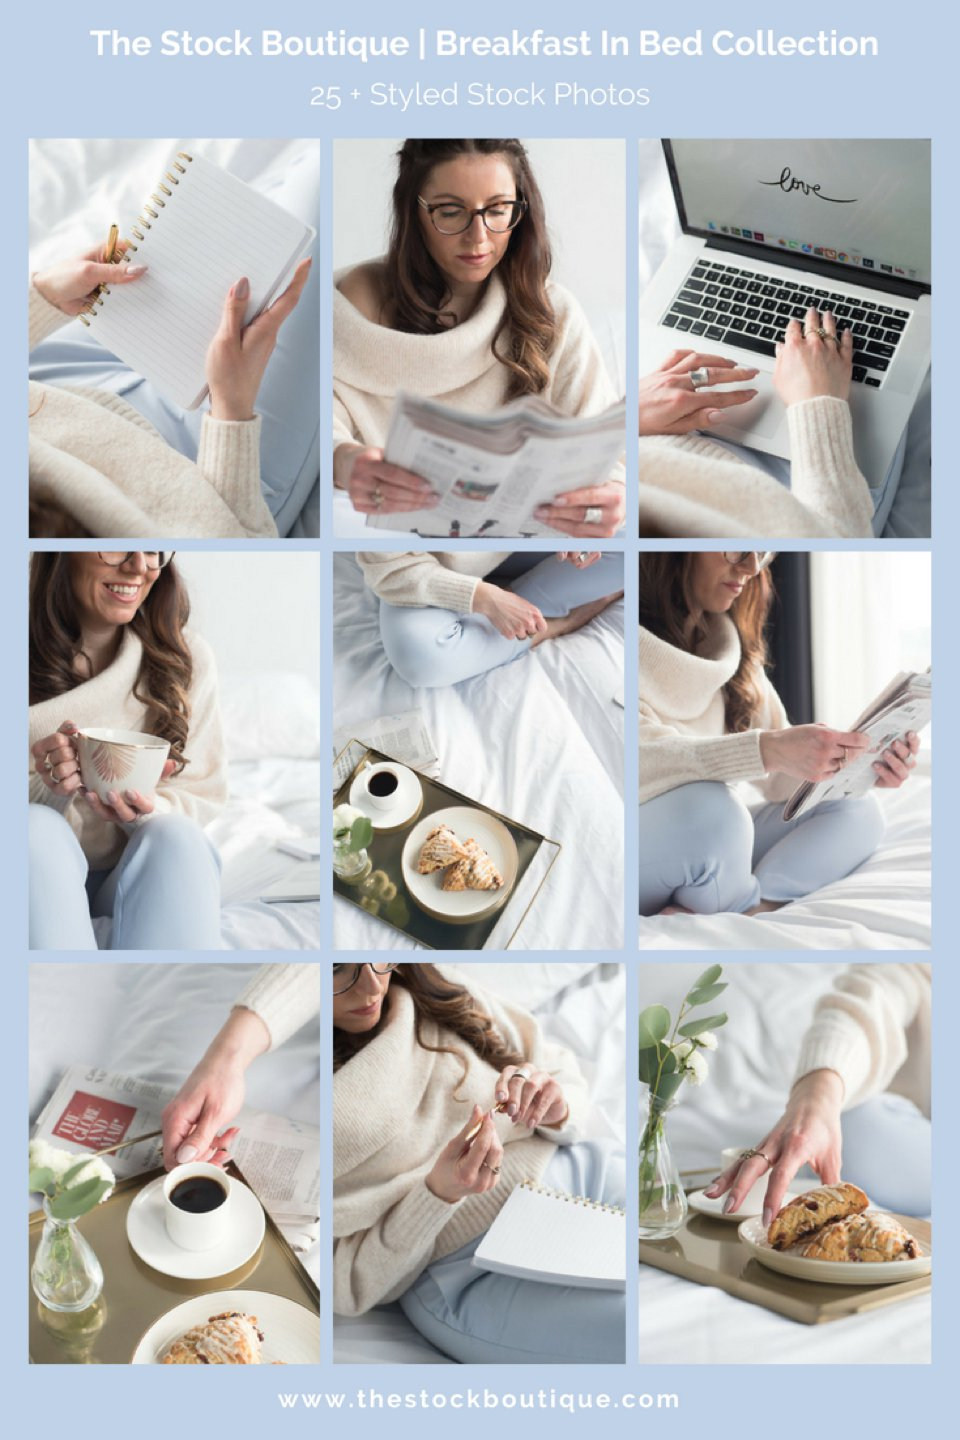 Feminine styled stock photography. We giveaway a stock photo every month when you subscribe! www.thestockboutique.com   #stockphoto     #femaleentrepreneur     #smallbusiness     #breakfastinbed